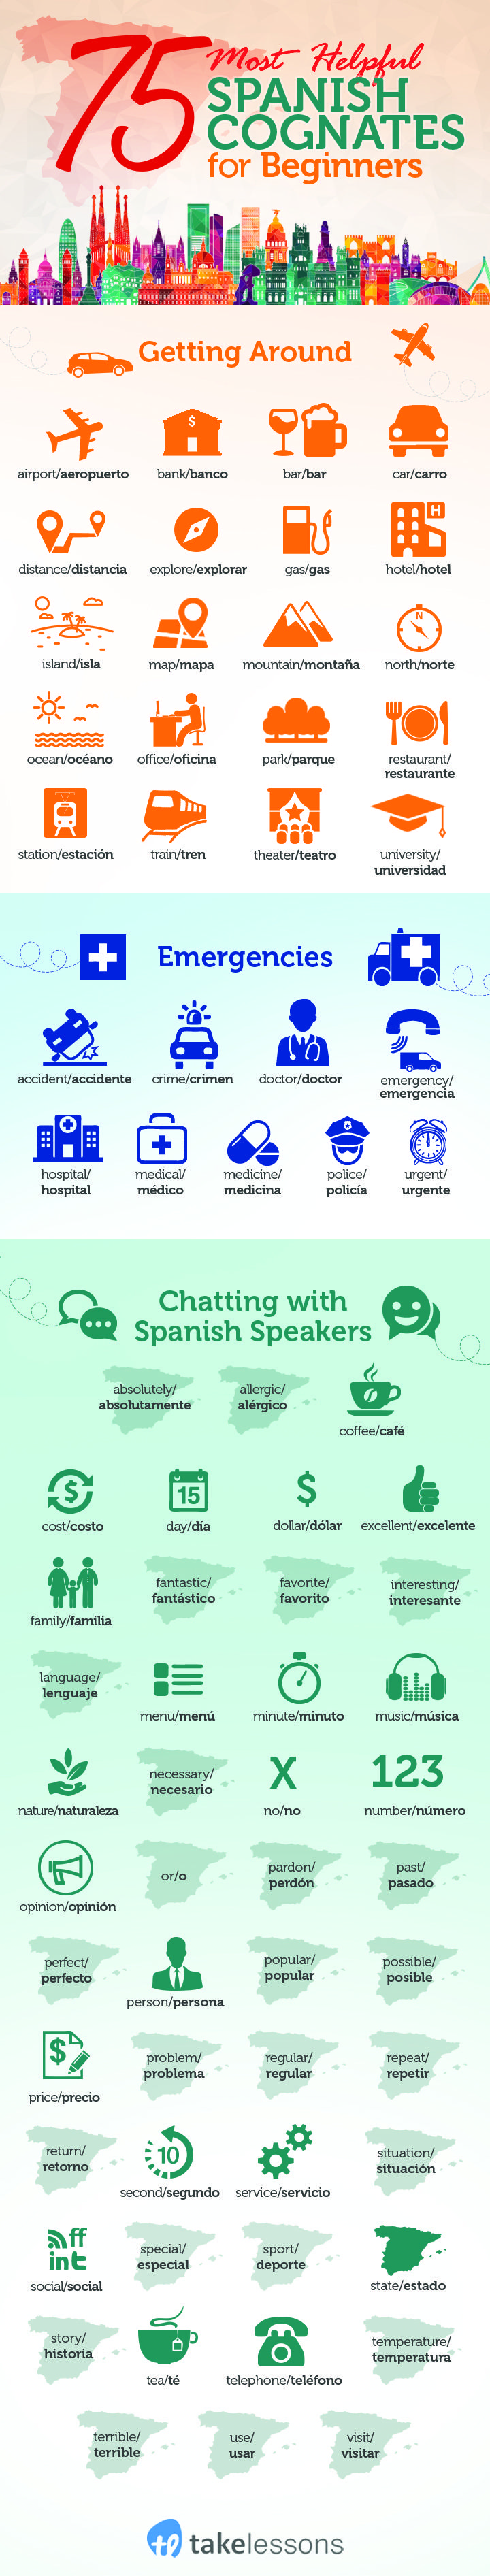 best images about ideas to teach spanish to th th graders remembering cognates is the fastest way to learn spanish check out this fun infographic to quickly learn 75 easy cognates in spanish